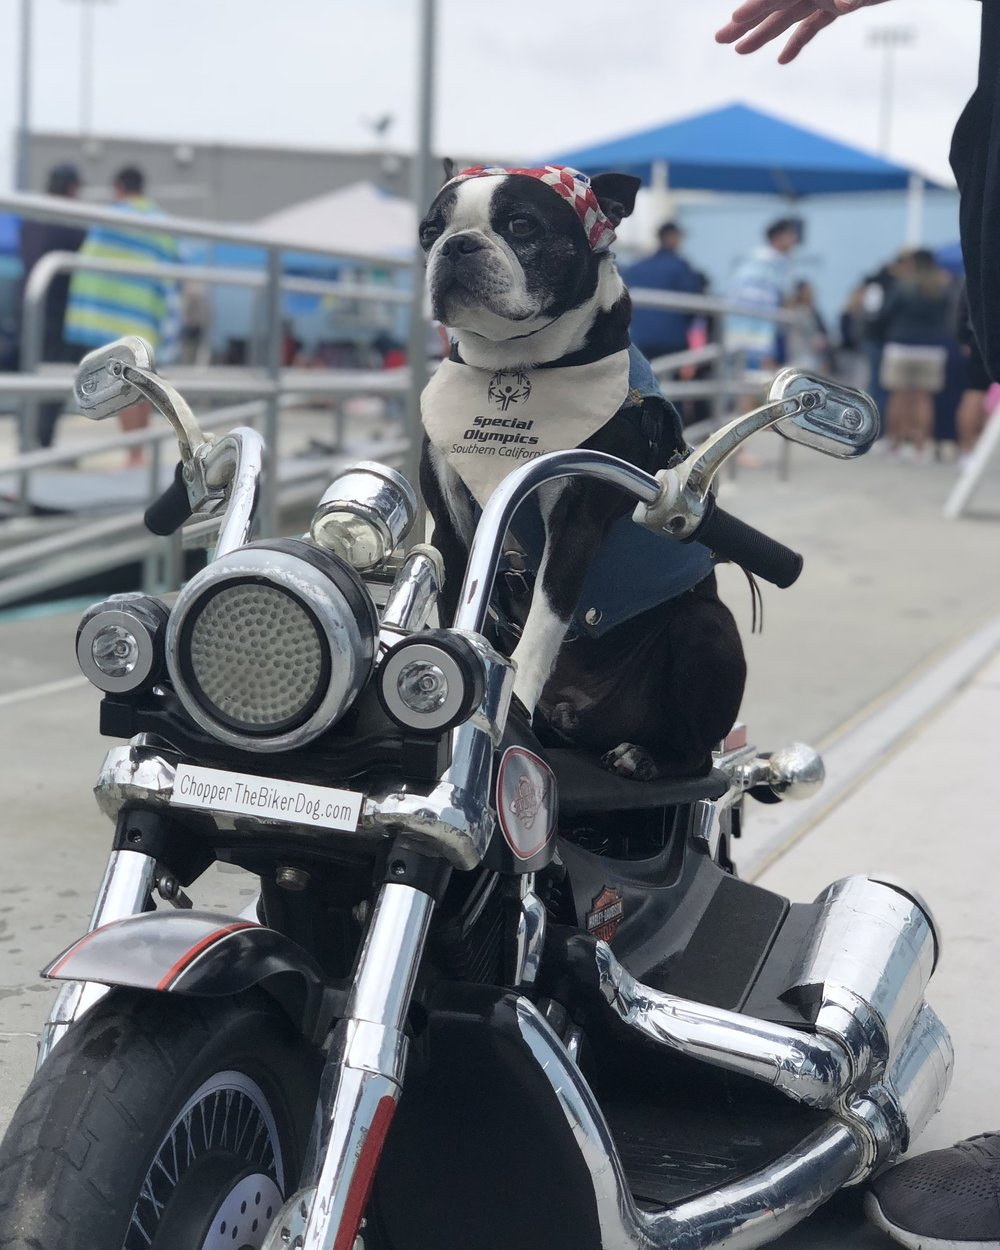 We got to meet Chopper the Biker Dog! So cool, you can check him out  here .